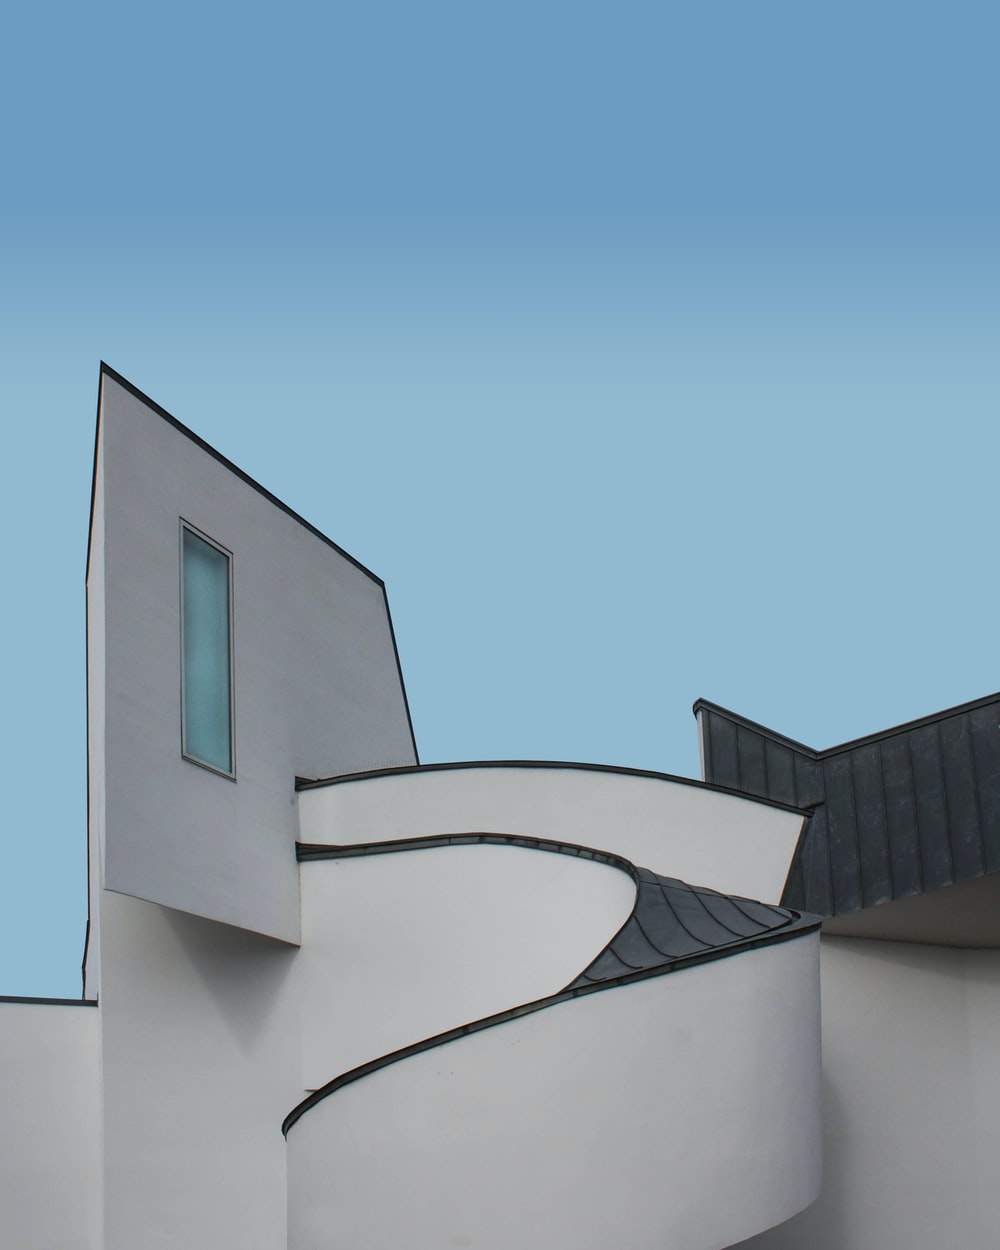 white and black concrete building during daytime